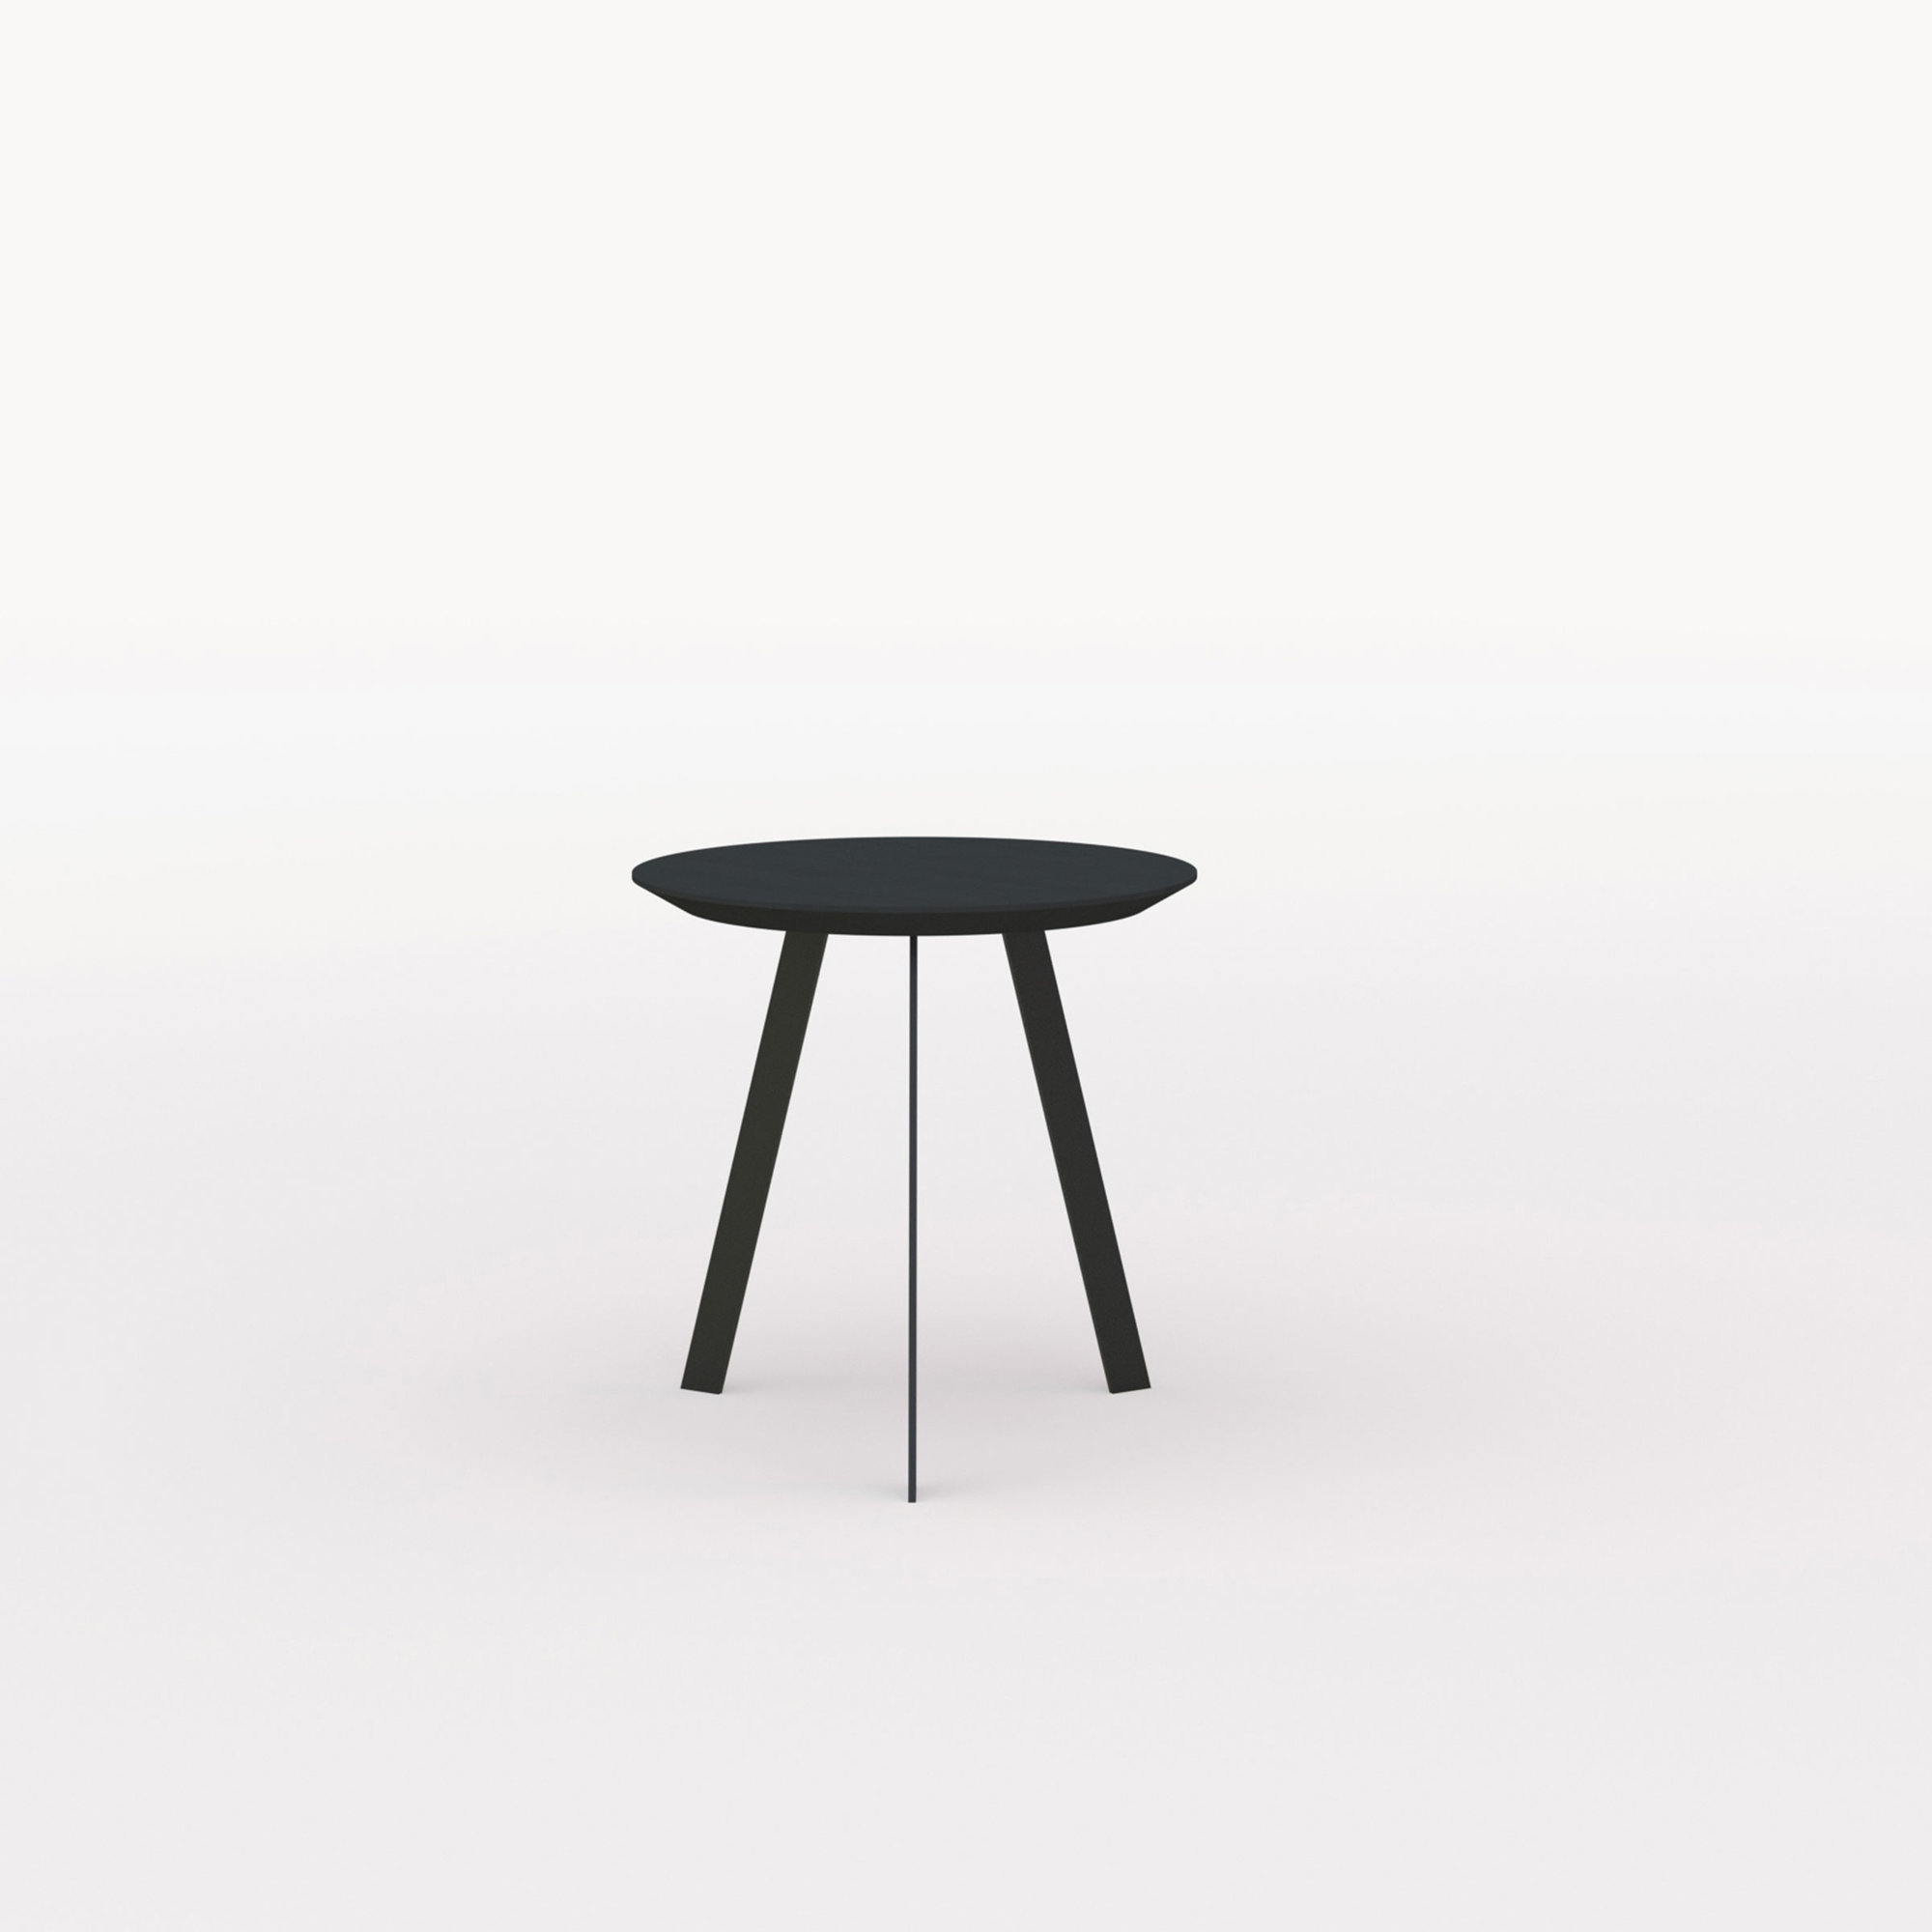 Design salontafel | New Co Coffee Table 50 Round Black | Oak black lacquer | Studio HENK | Listing_image